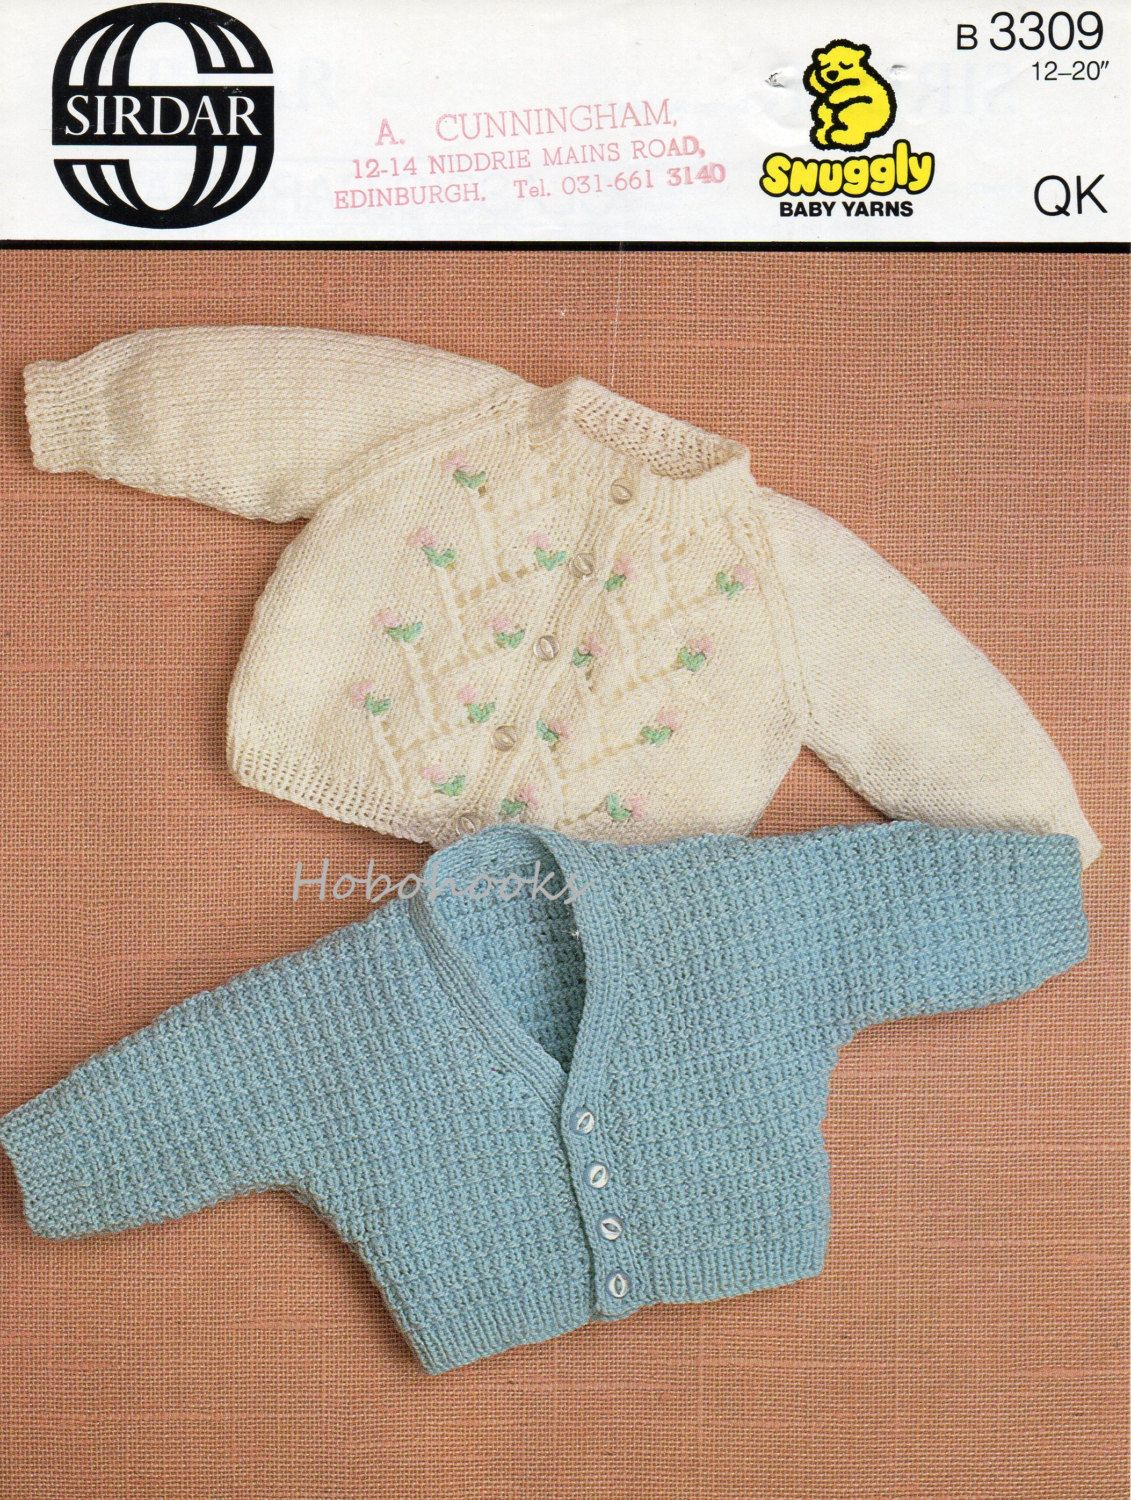 Baby cardigans knitting pattern embroidered cardigan dolman sleeve baby cardigans knitting pattern embroidered cardigan dolman sleeve premature newborn 12 20inch dk baby knitting pattern pdf instant download bankloansurffo Gallery